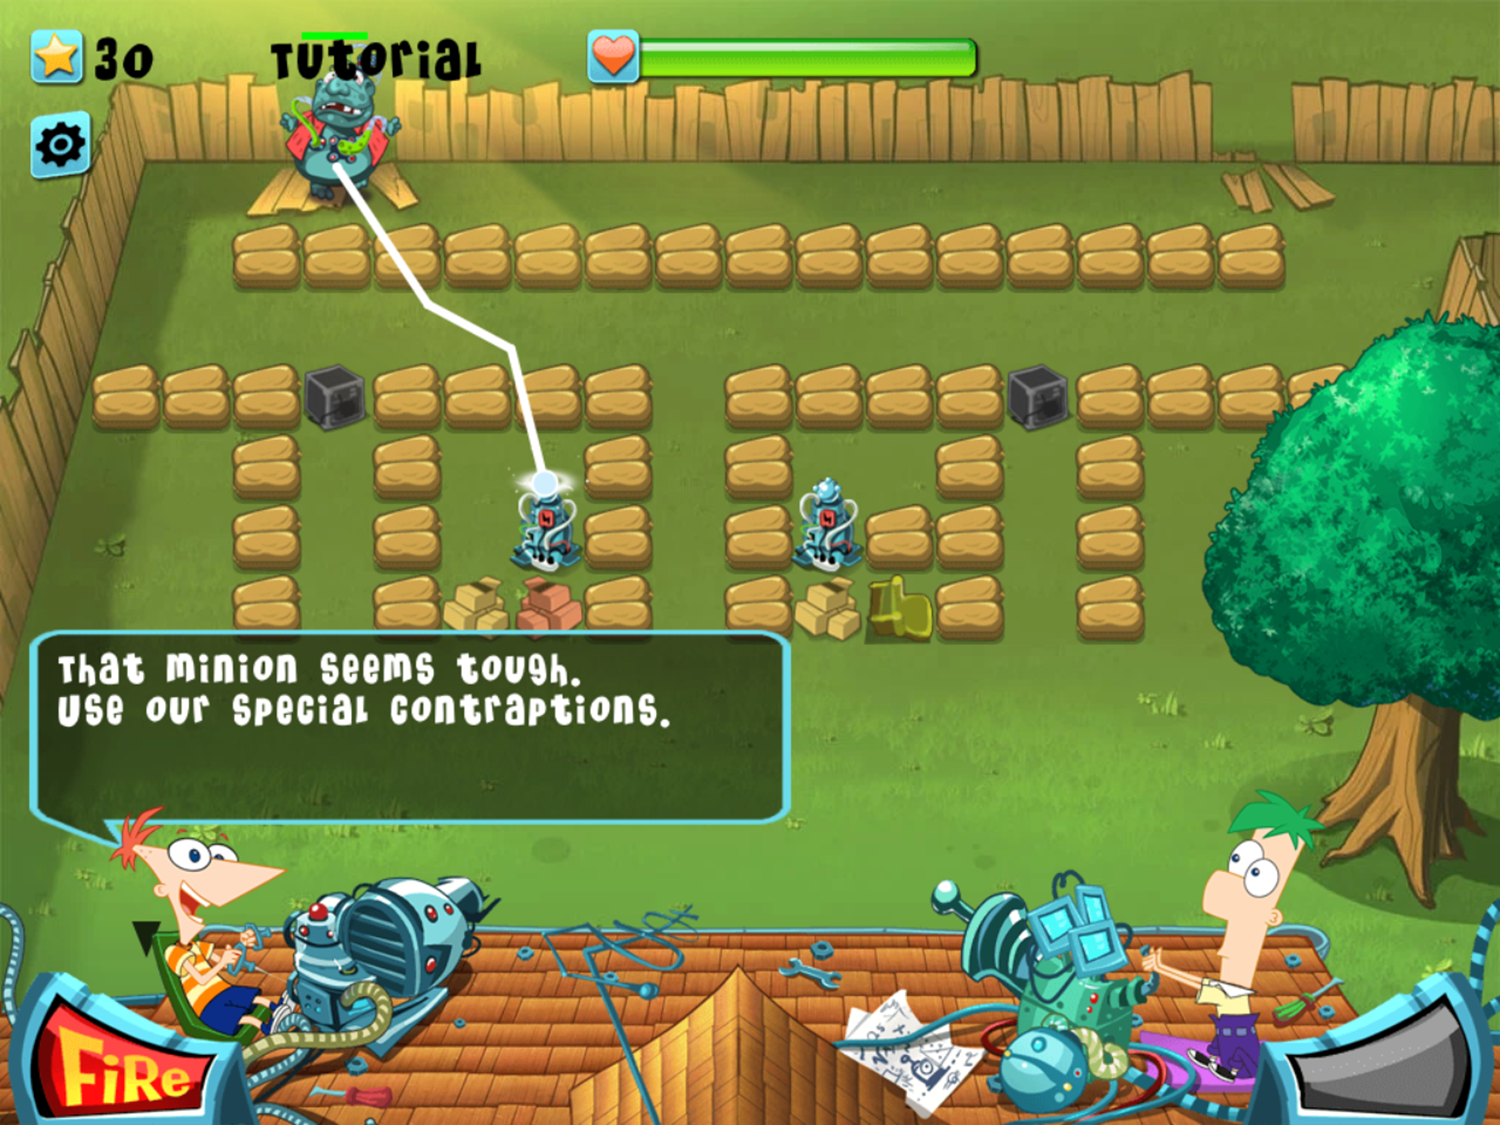 Phineas and Ferb Backyard Defense Game Extra Tips Screenshot.